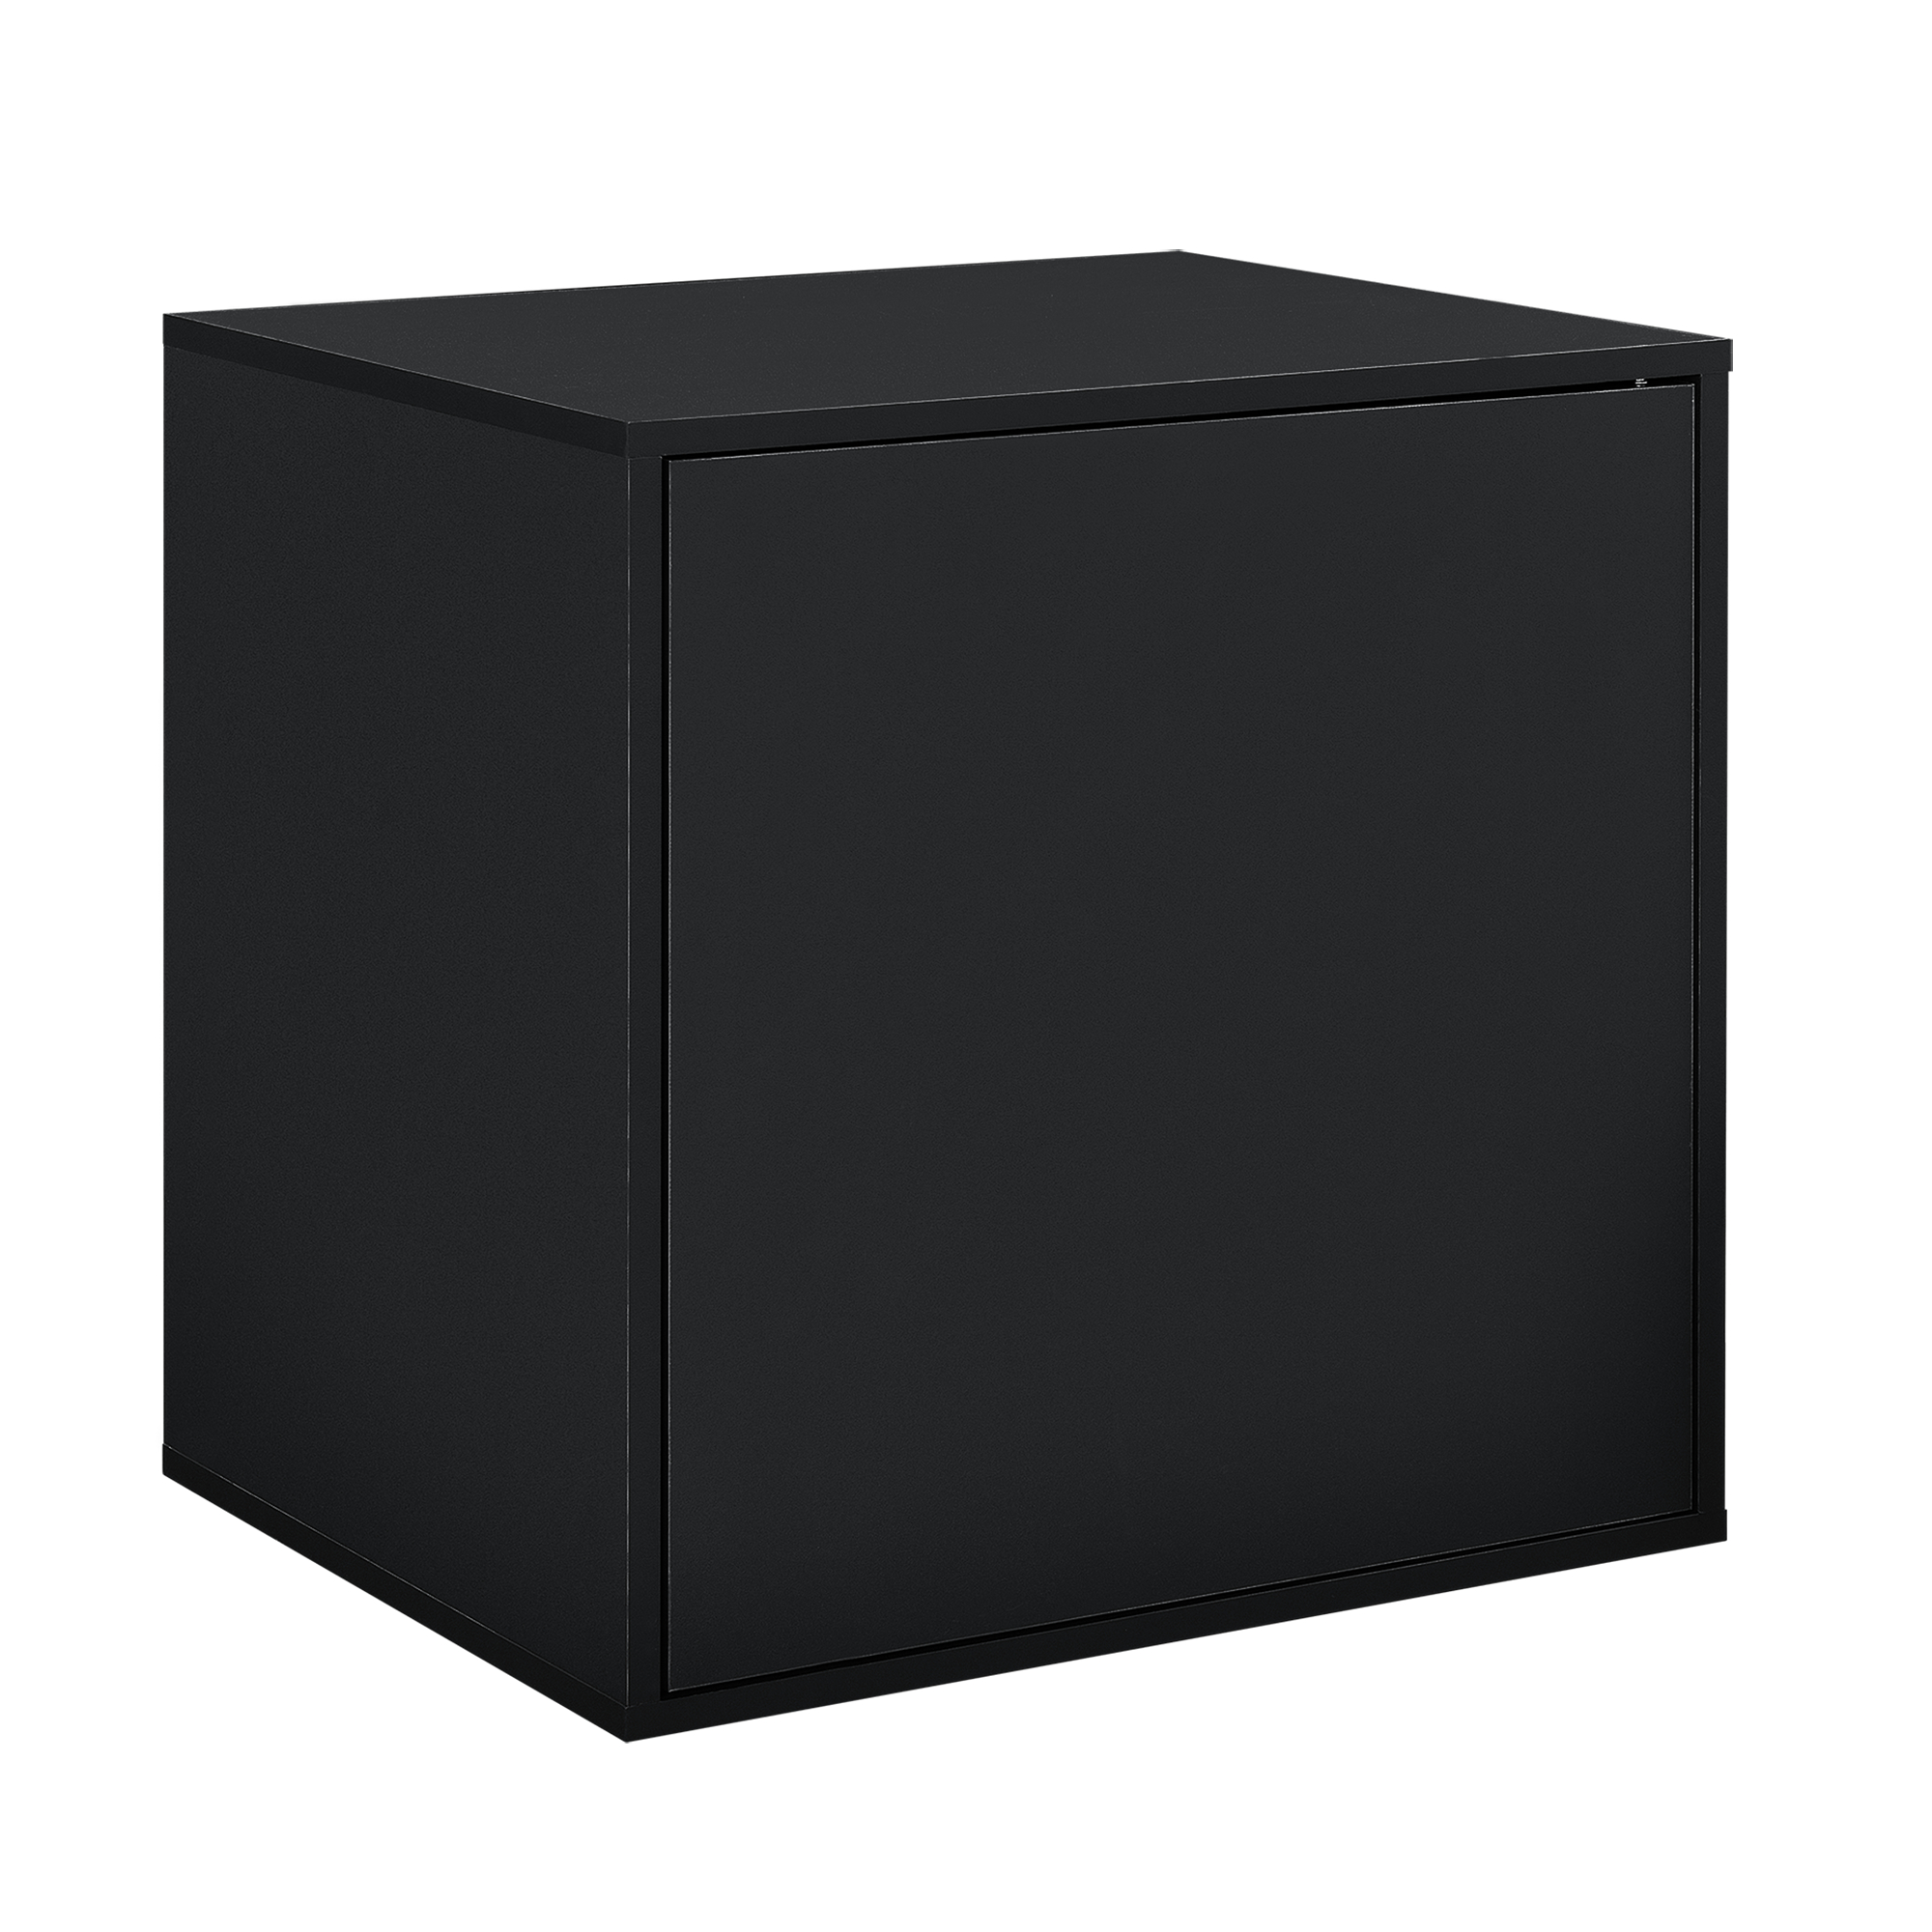 h ngeschrank 45x45x40cm schwarz wandschrank schrank wandregal regal ebay. Black Bedroom Furniture Sets. Home Design Ideas